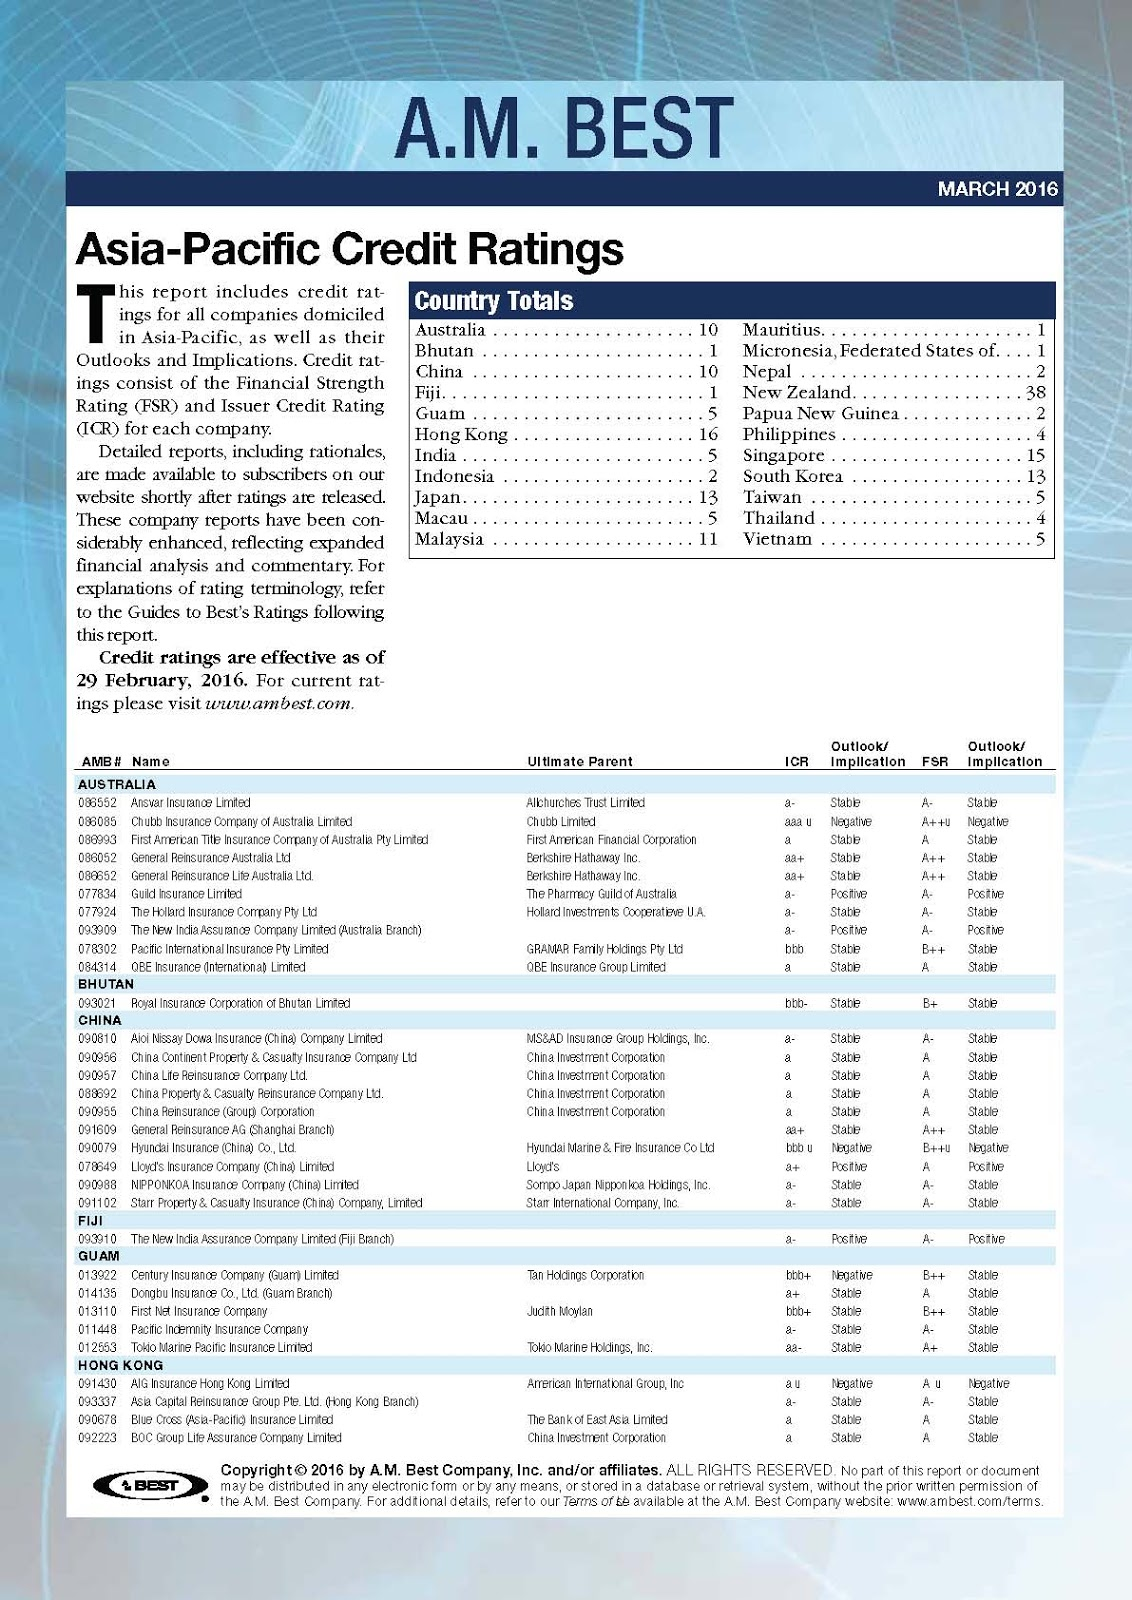 Credit Ratings Are Effective As Of 29 February 2016 For Cur Please Visit Www Ambest